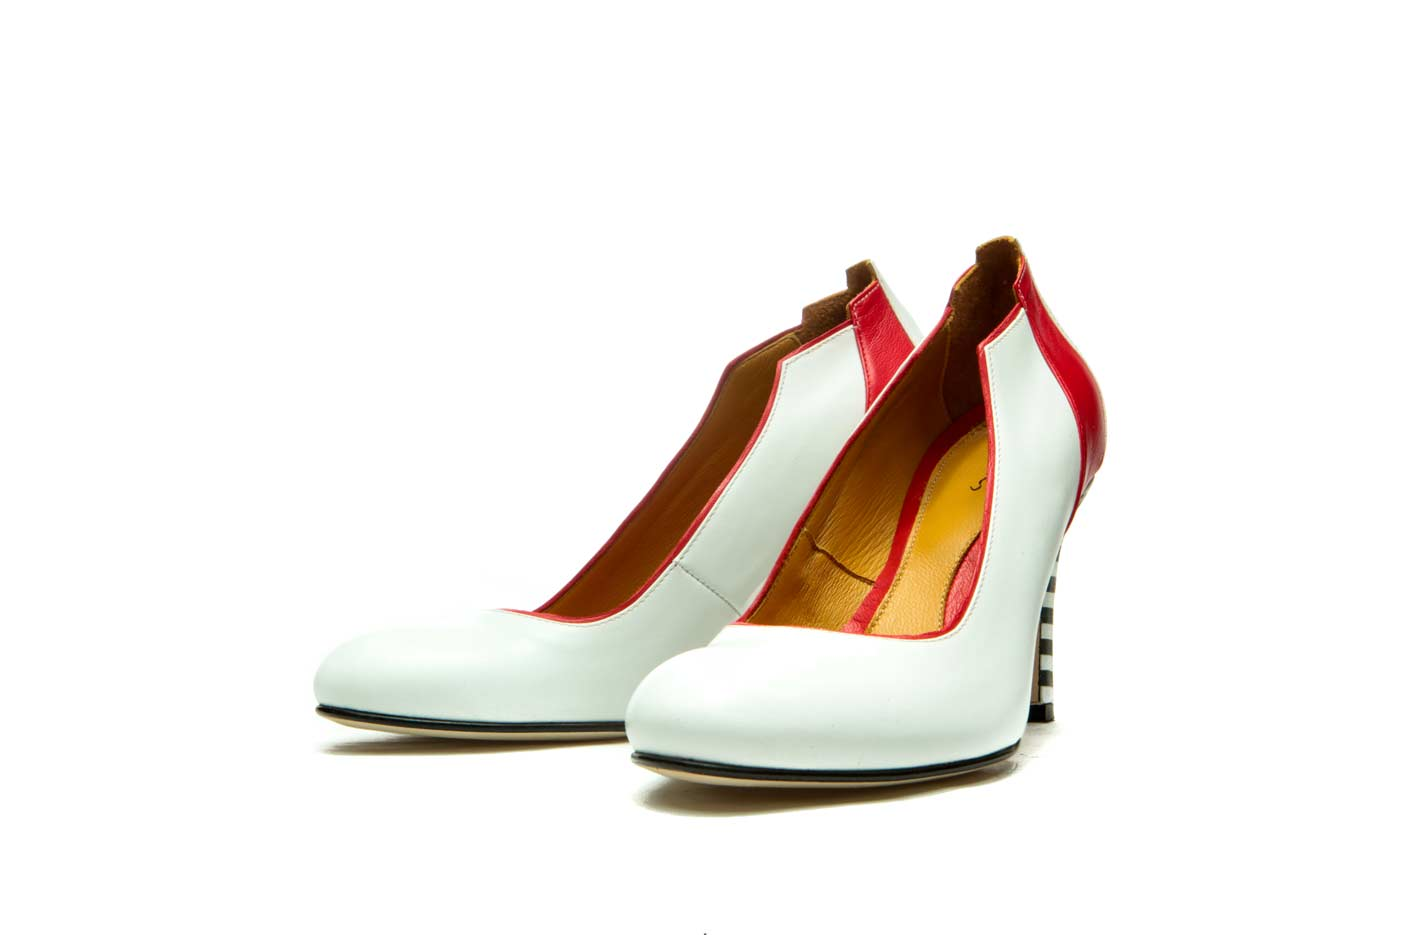 White pumps | Handmade leather shoes